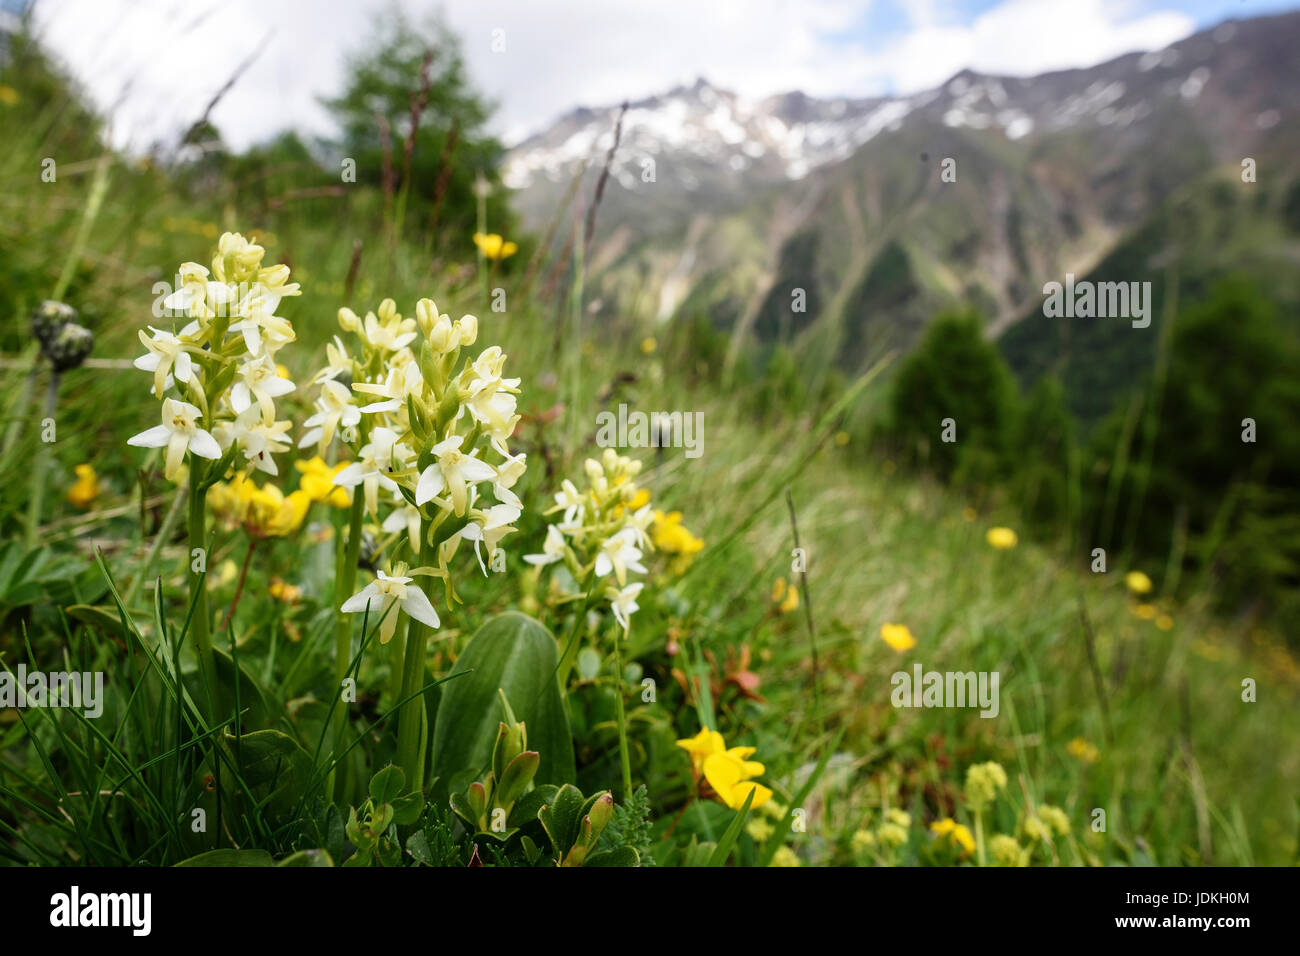 Greenish forest hyacinth on a mountain pasture, Plathanthrea chlorantha,, Grünliche Waldhyazinthe auf einer - Stock Image